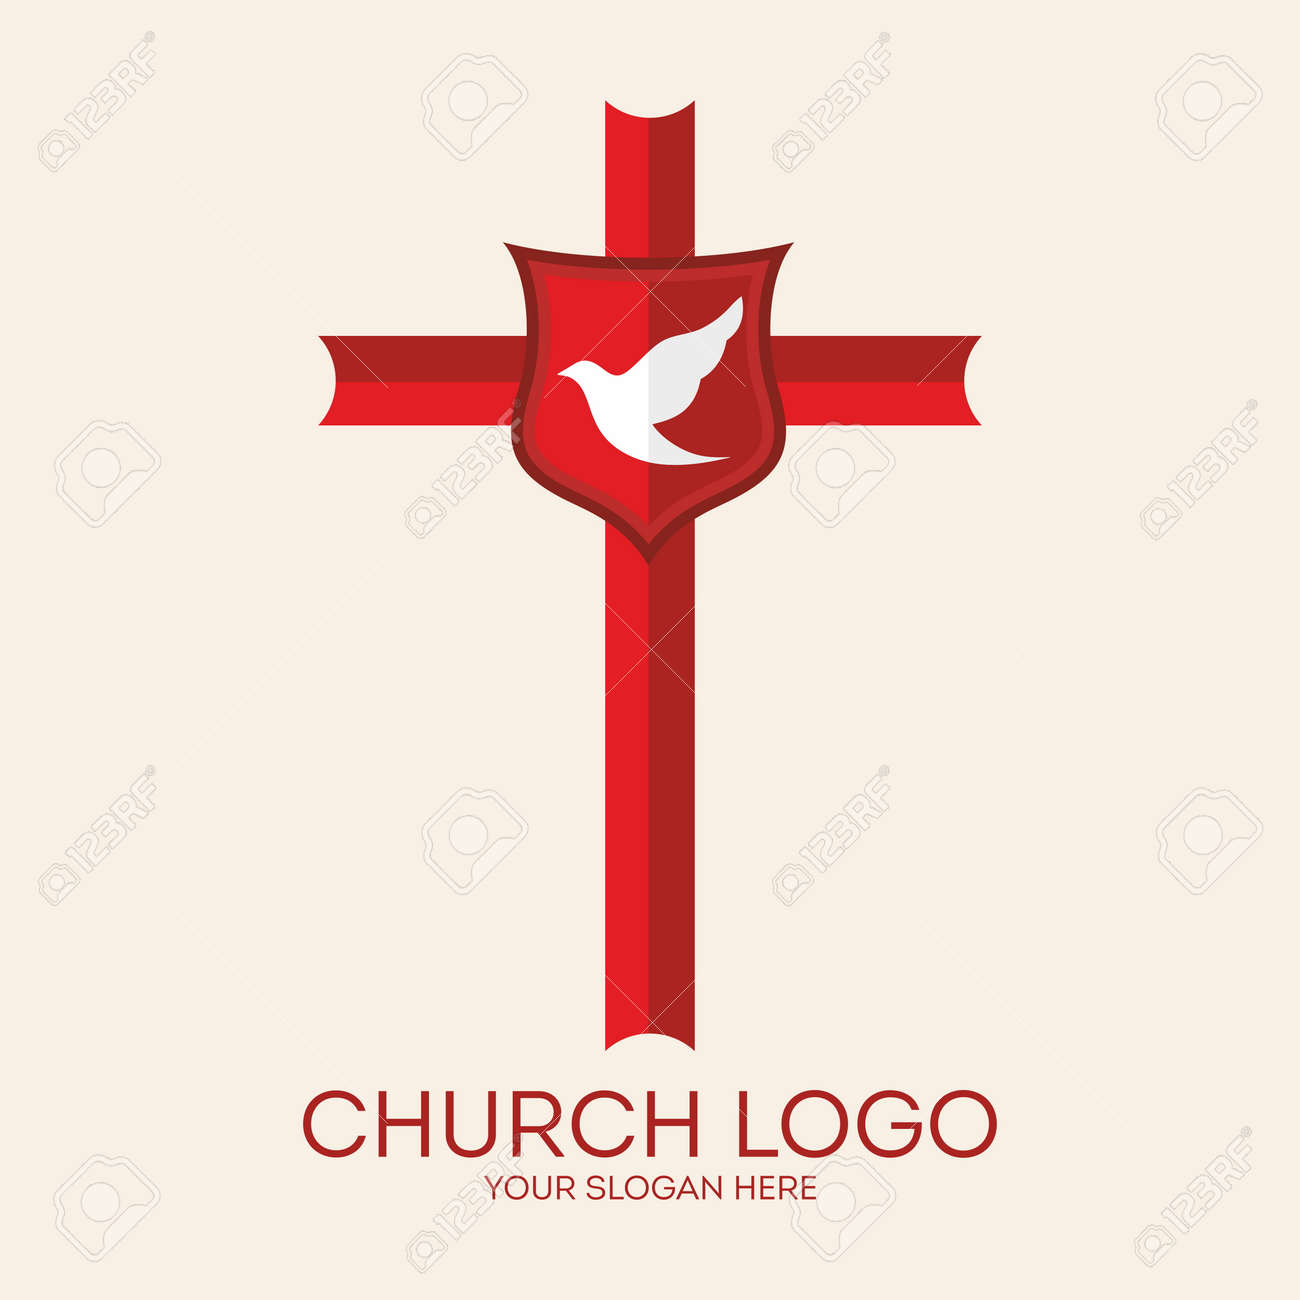 Church logo dove cross red shield icon christian royalty free church logo dove cross red shield icon christian stock vector altavistaventures Images